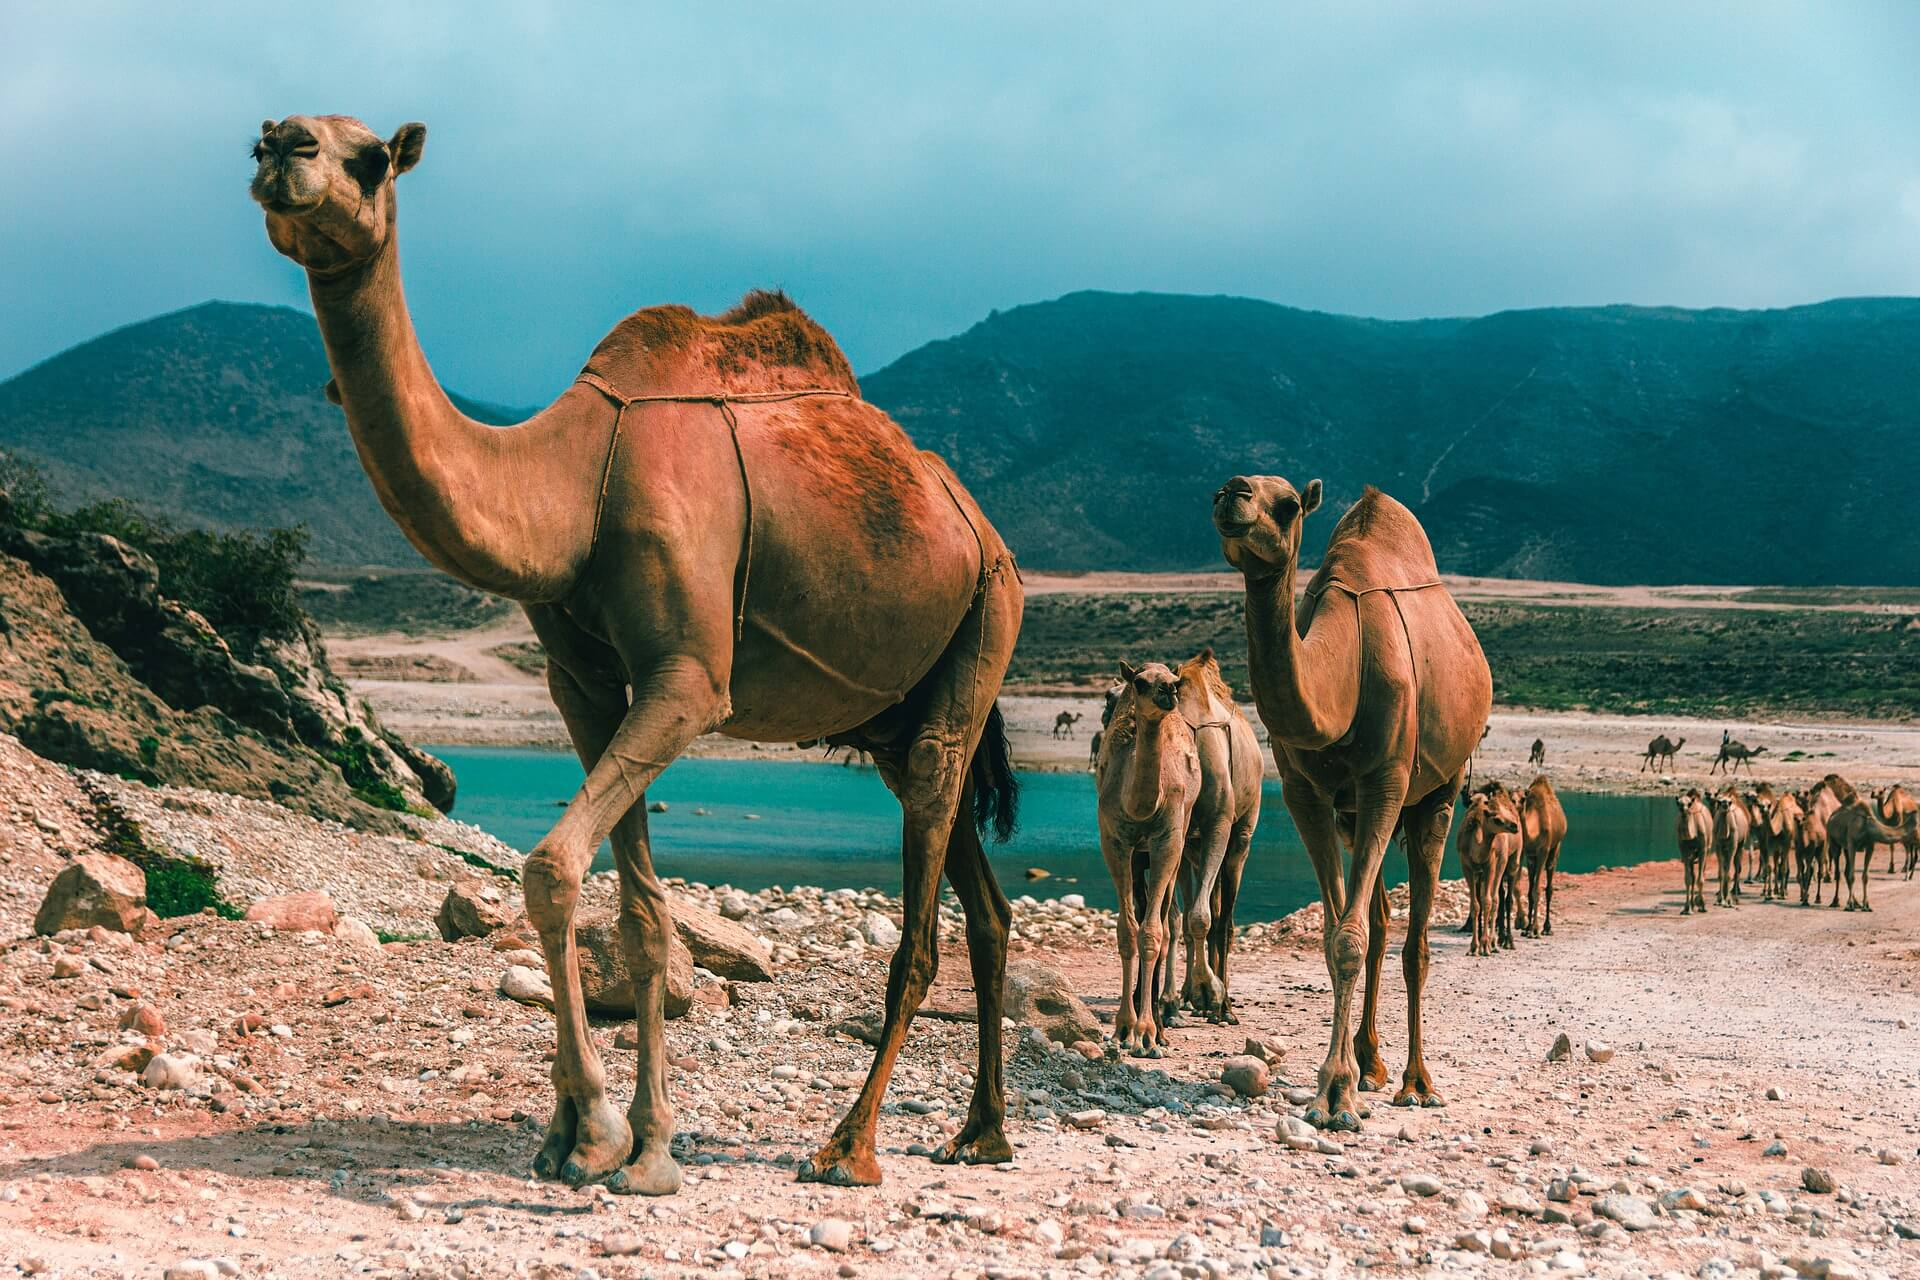 places to visit in oman camels marching from the ocean